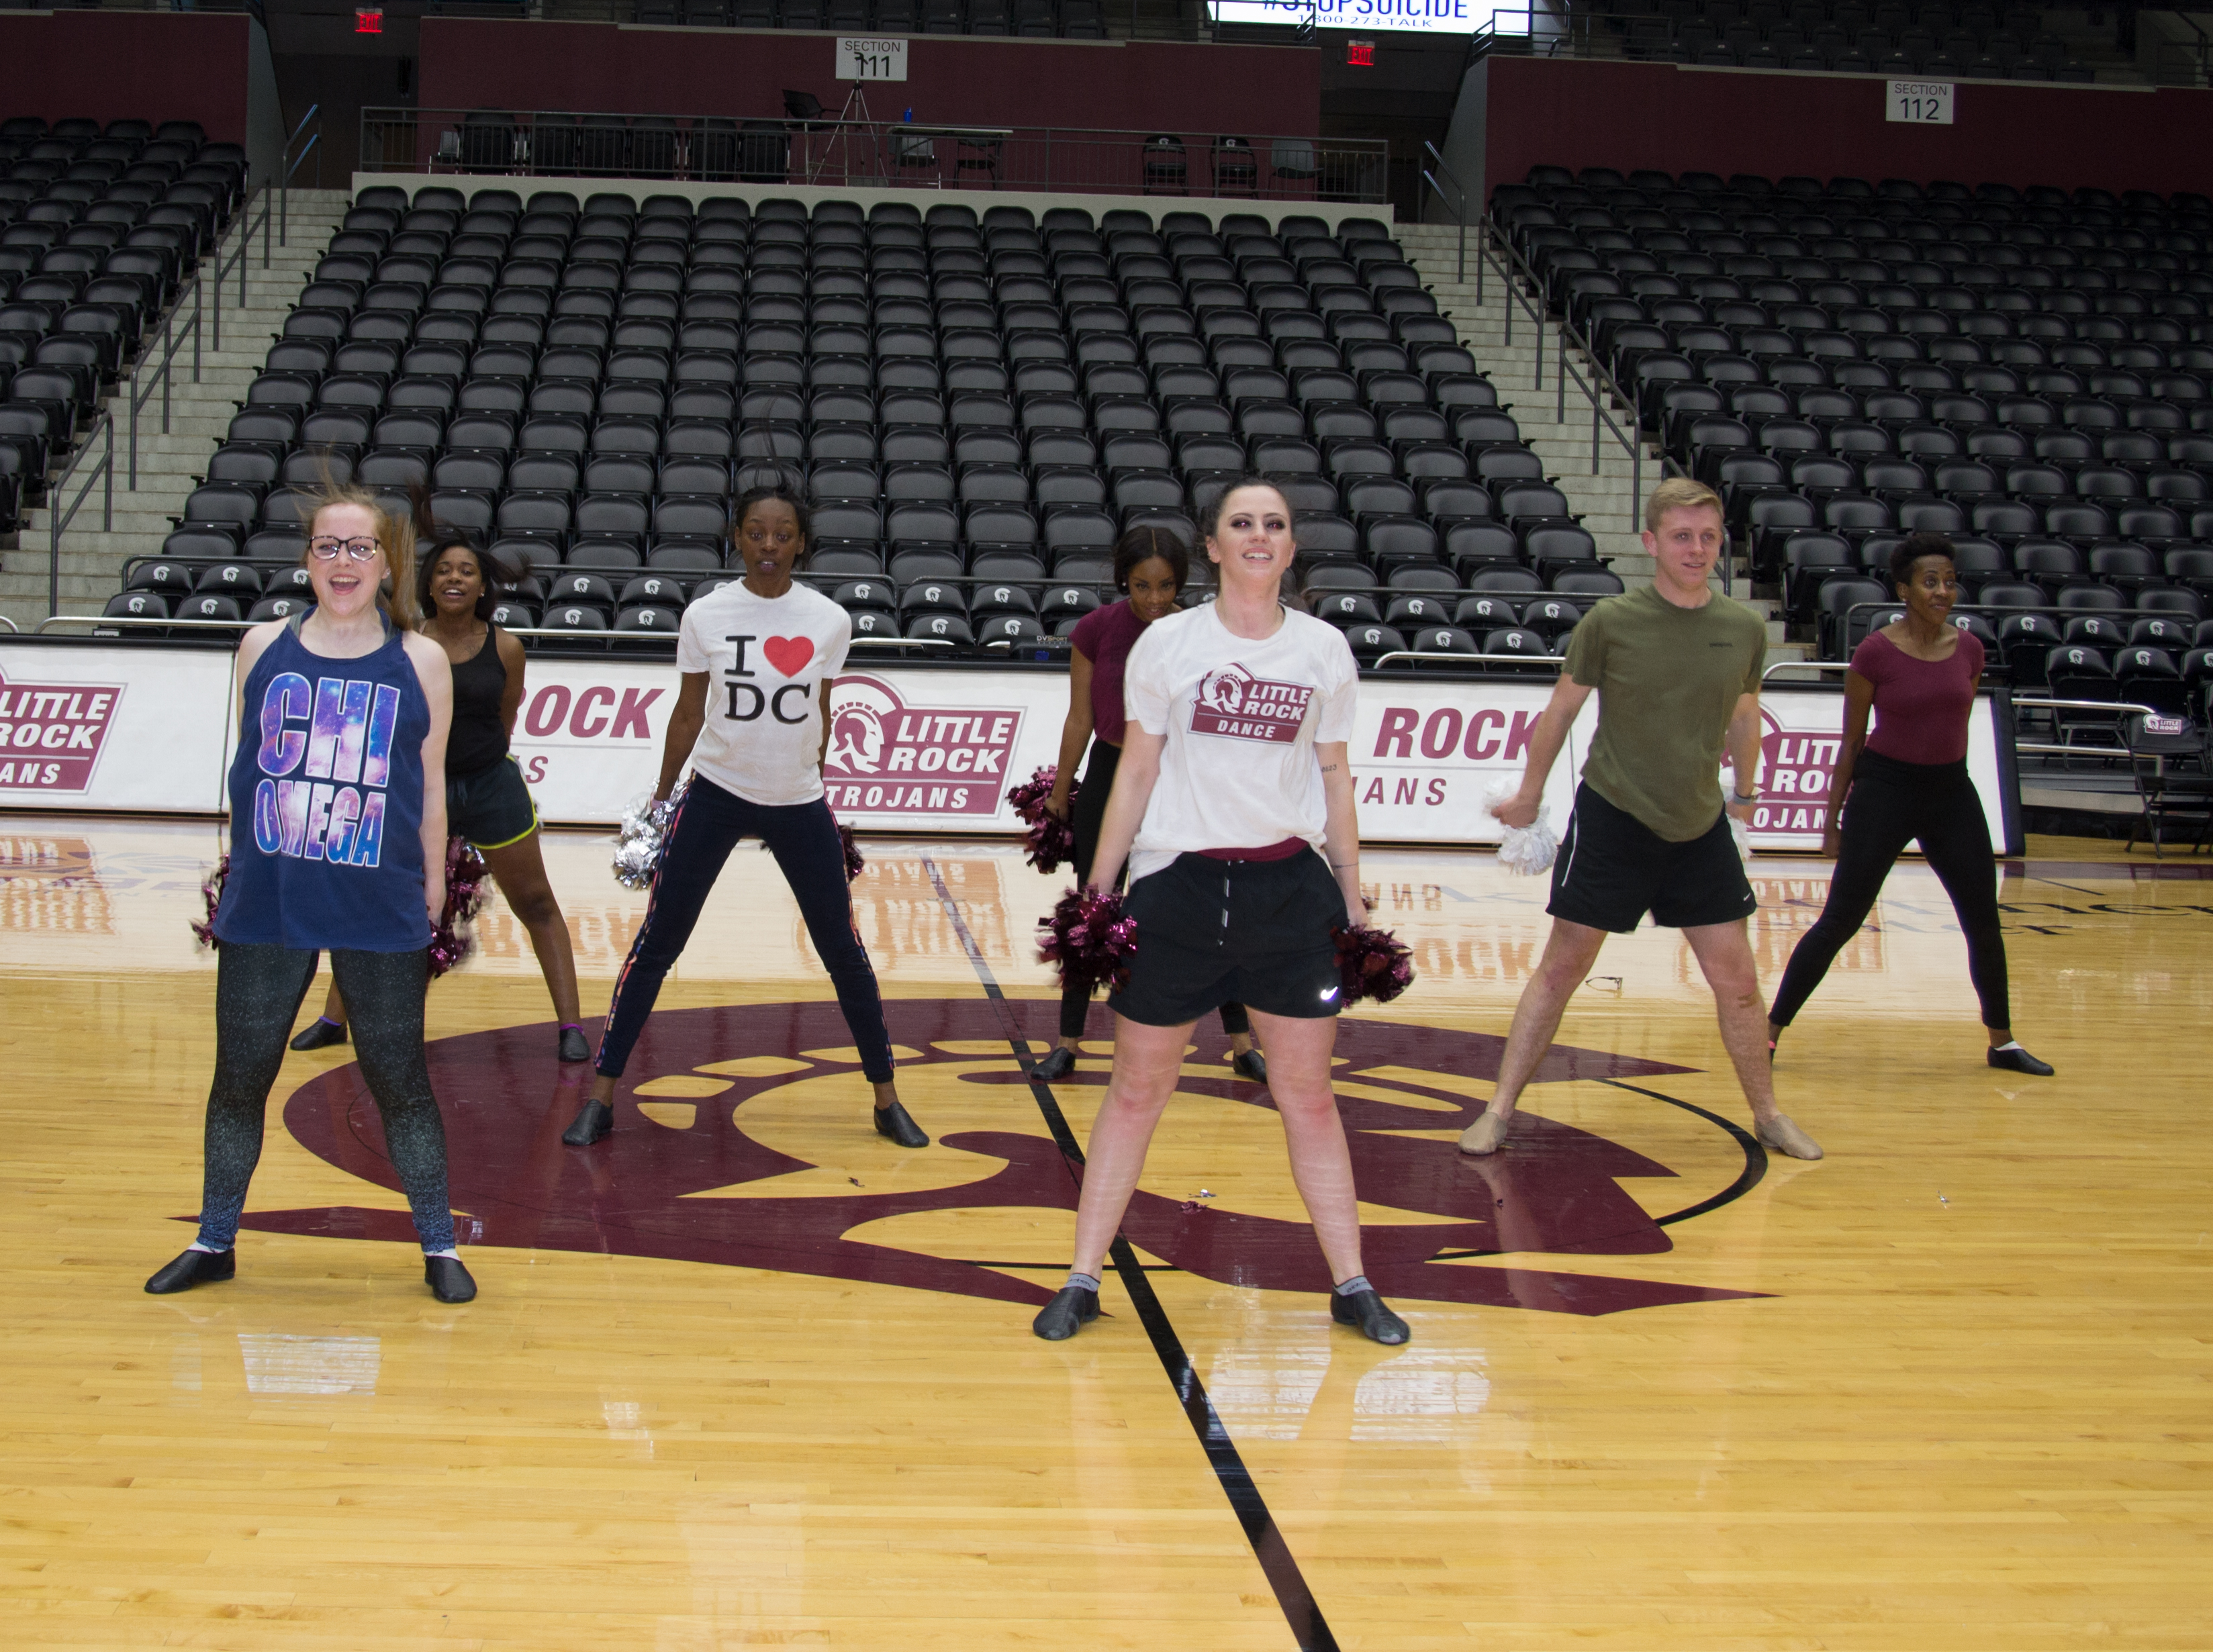 UA Little Rock dance team members shows excitement as they start their routine.